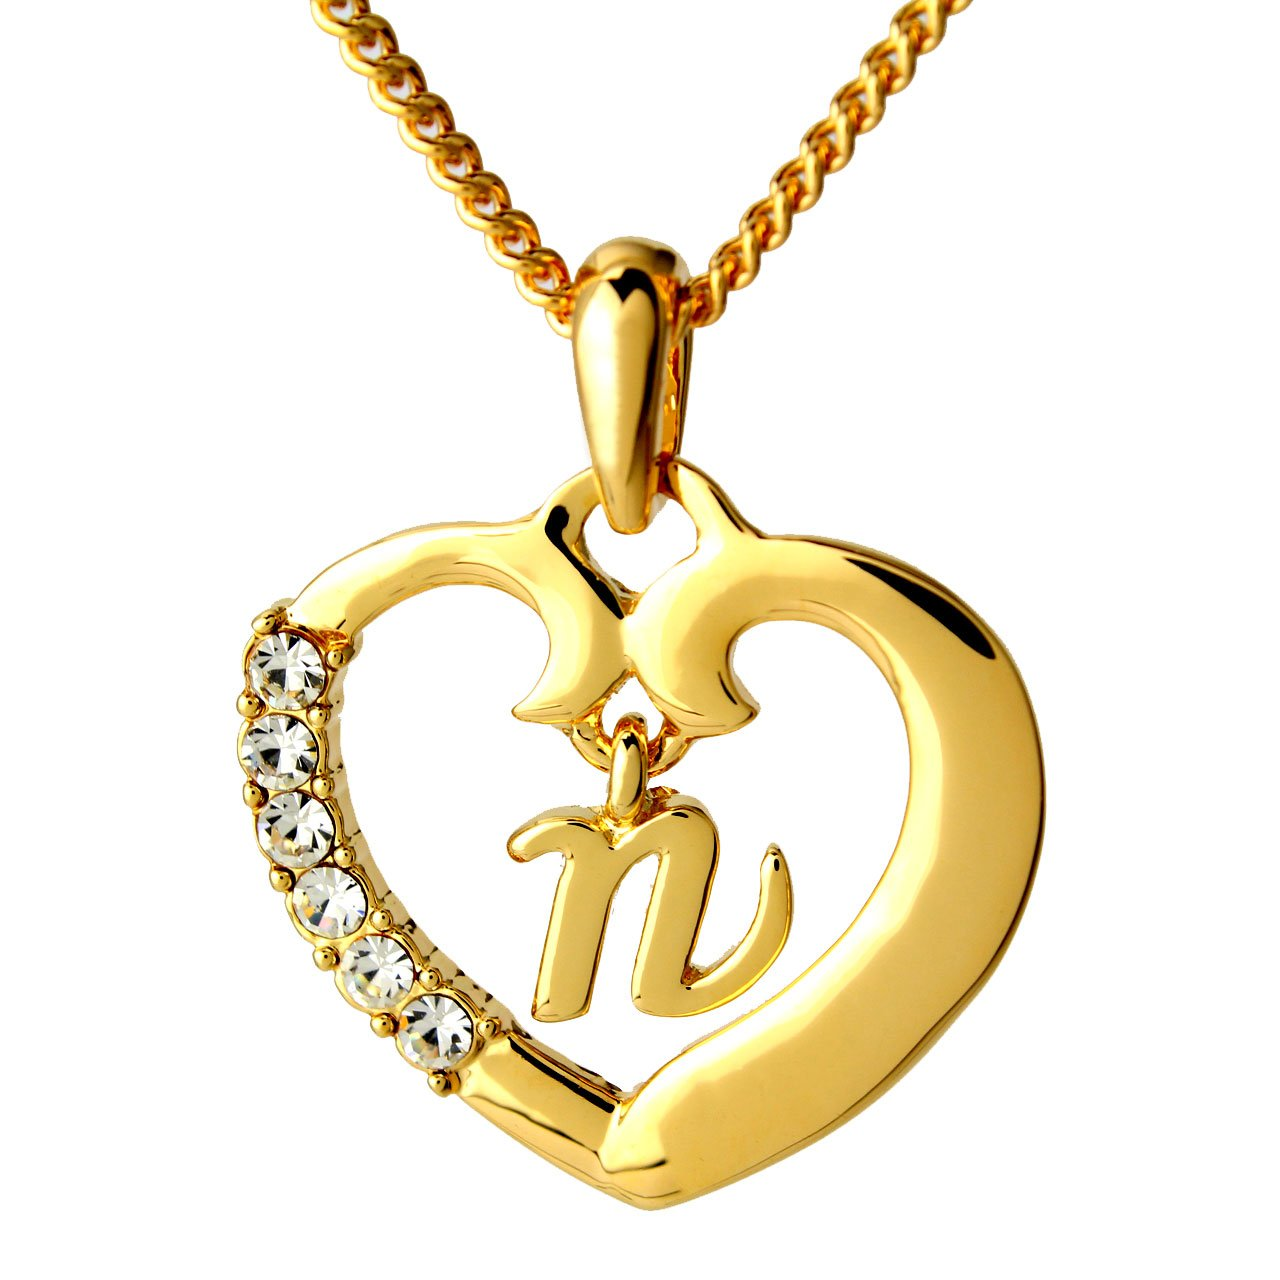 Zacria Name Necklace Initial N - 18K Gold Plated Letter Pendant Chain